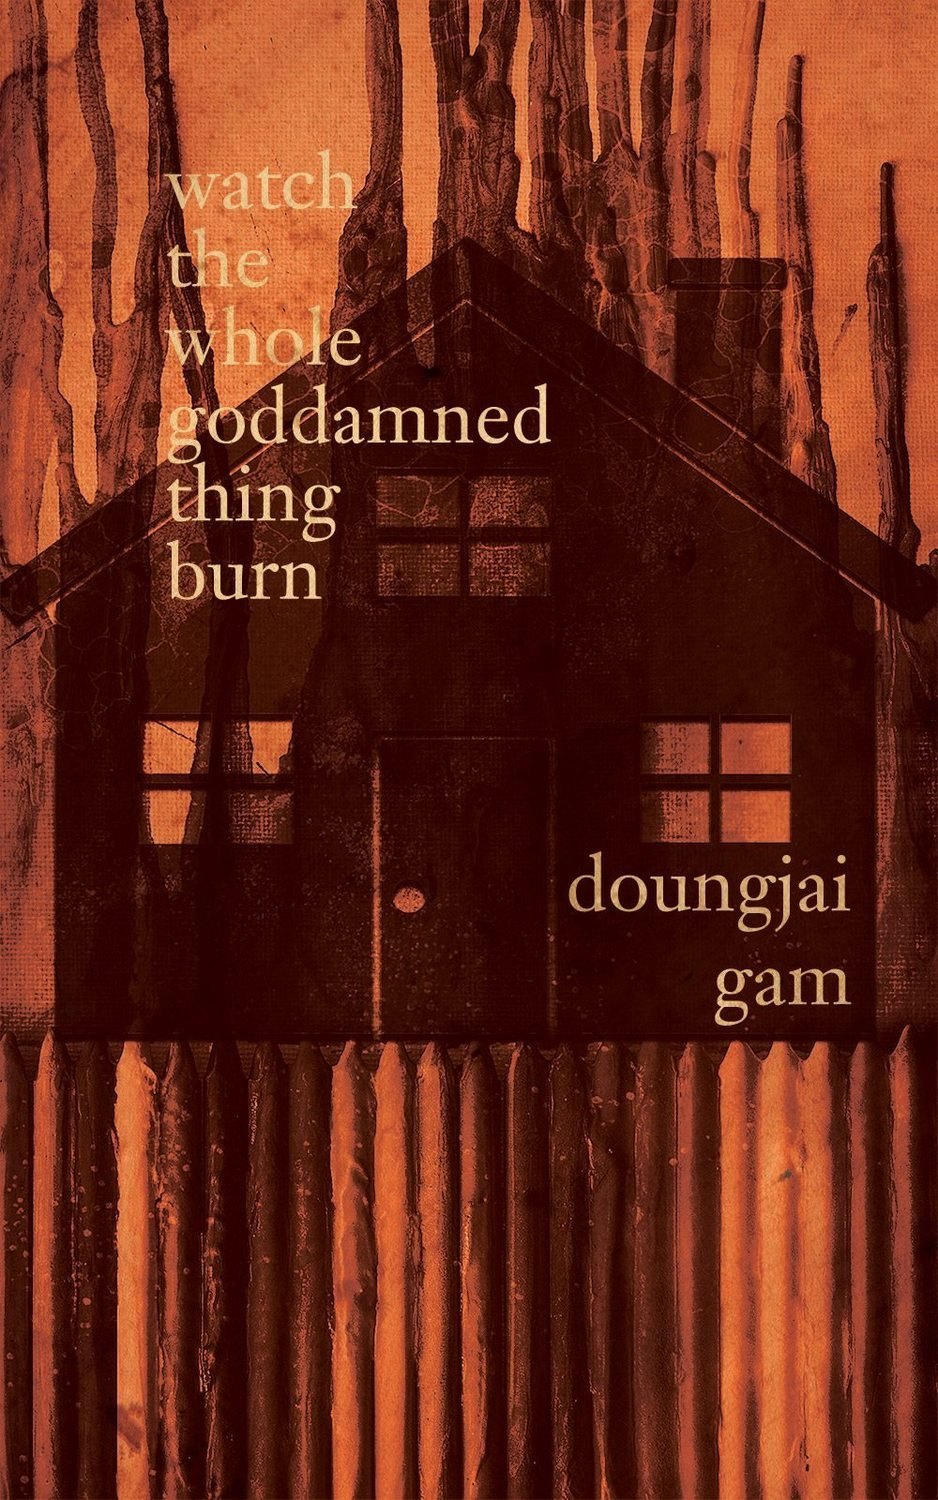 watch the whole goddamned thing burn by Doungjai Gam (Charitable Chapbook #3)